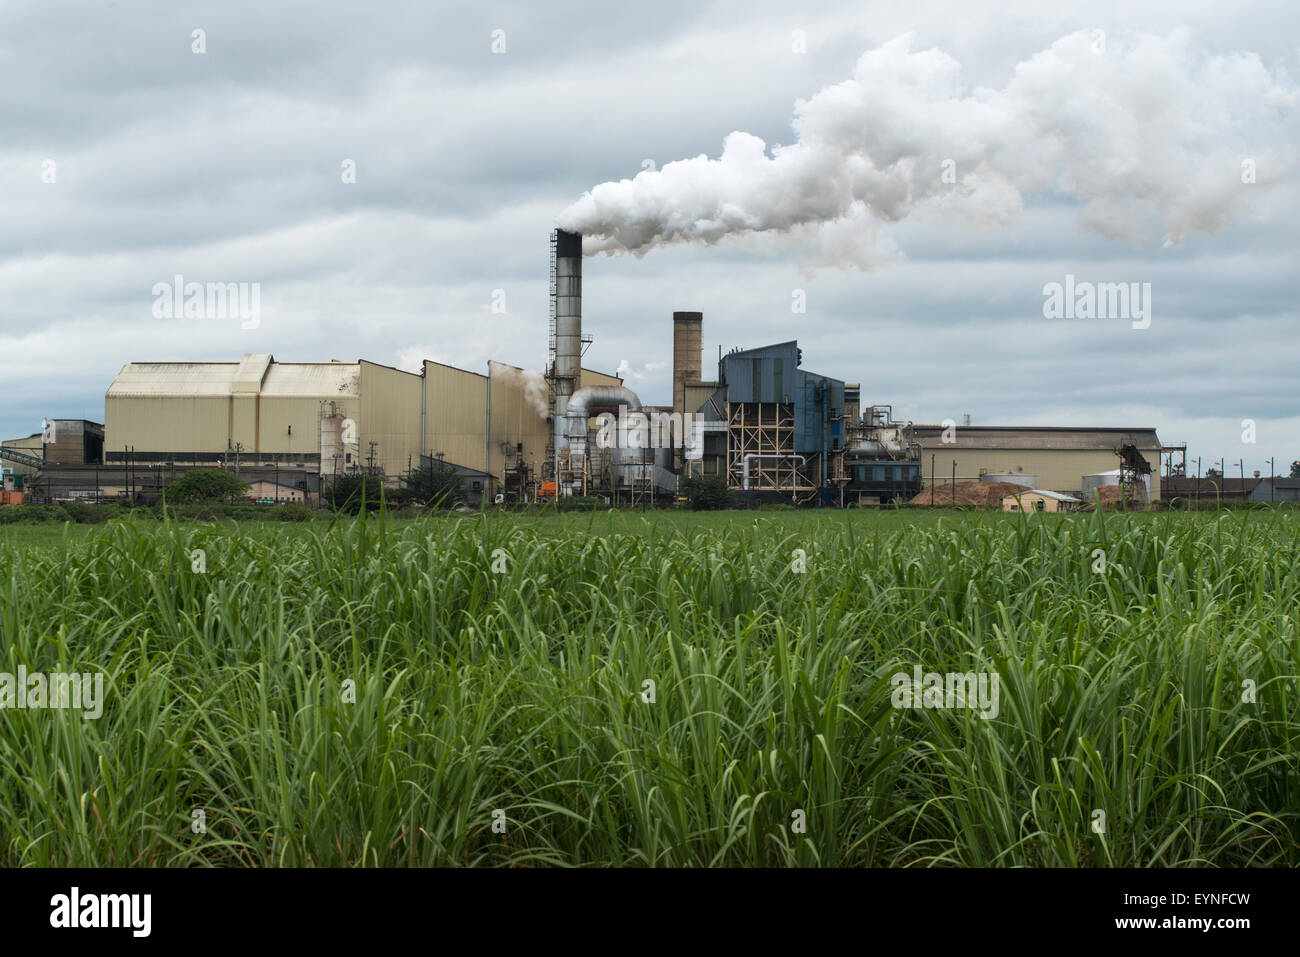 Sugar mill and sugar cane field, Mhlume, Swaziland Stock Photo